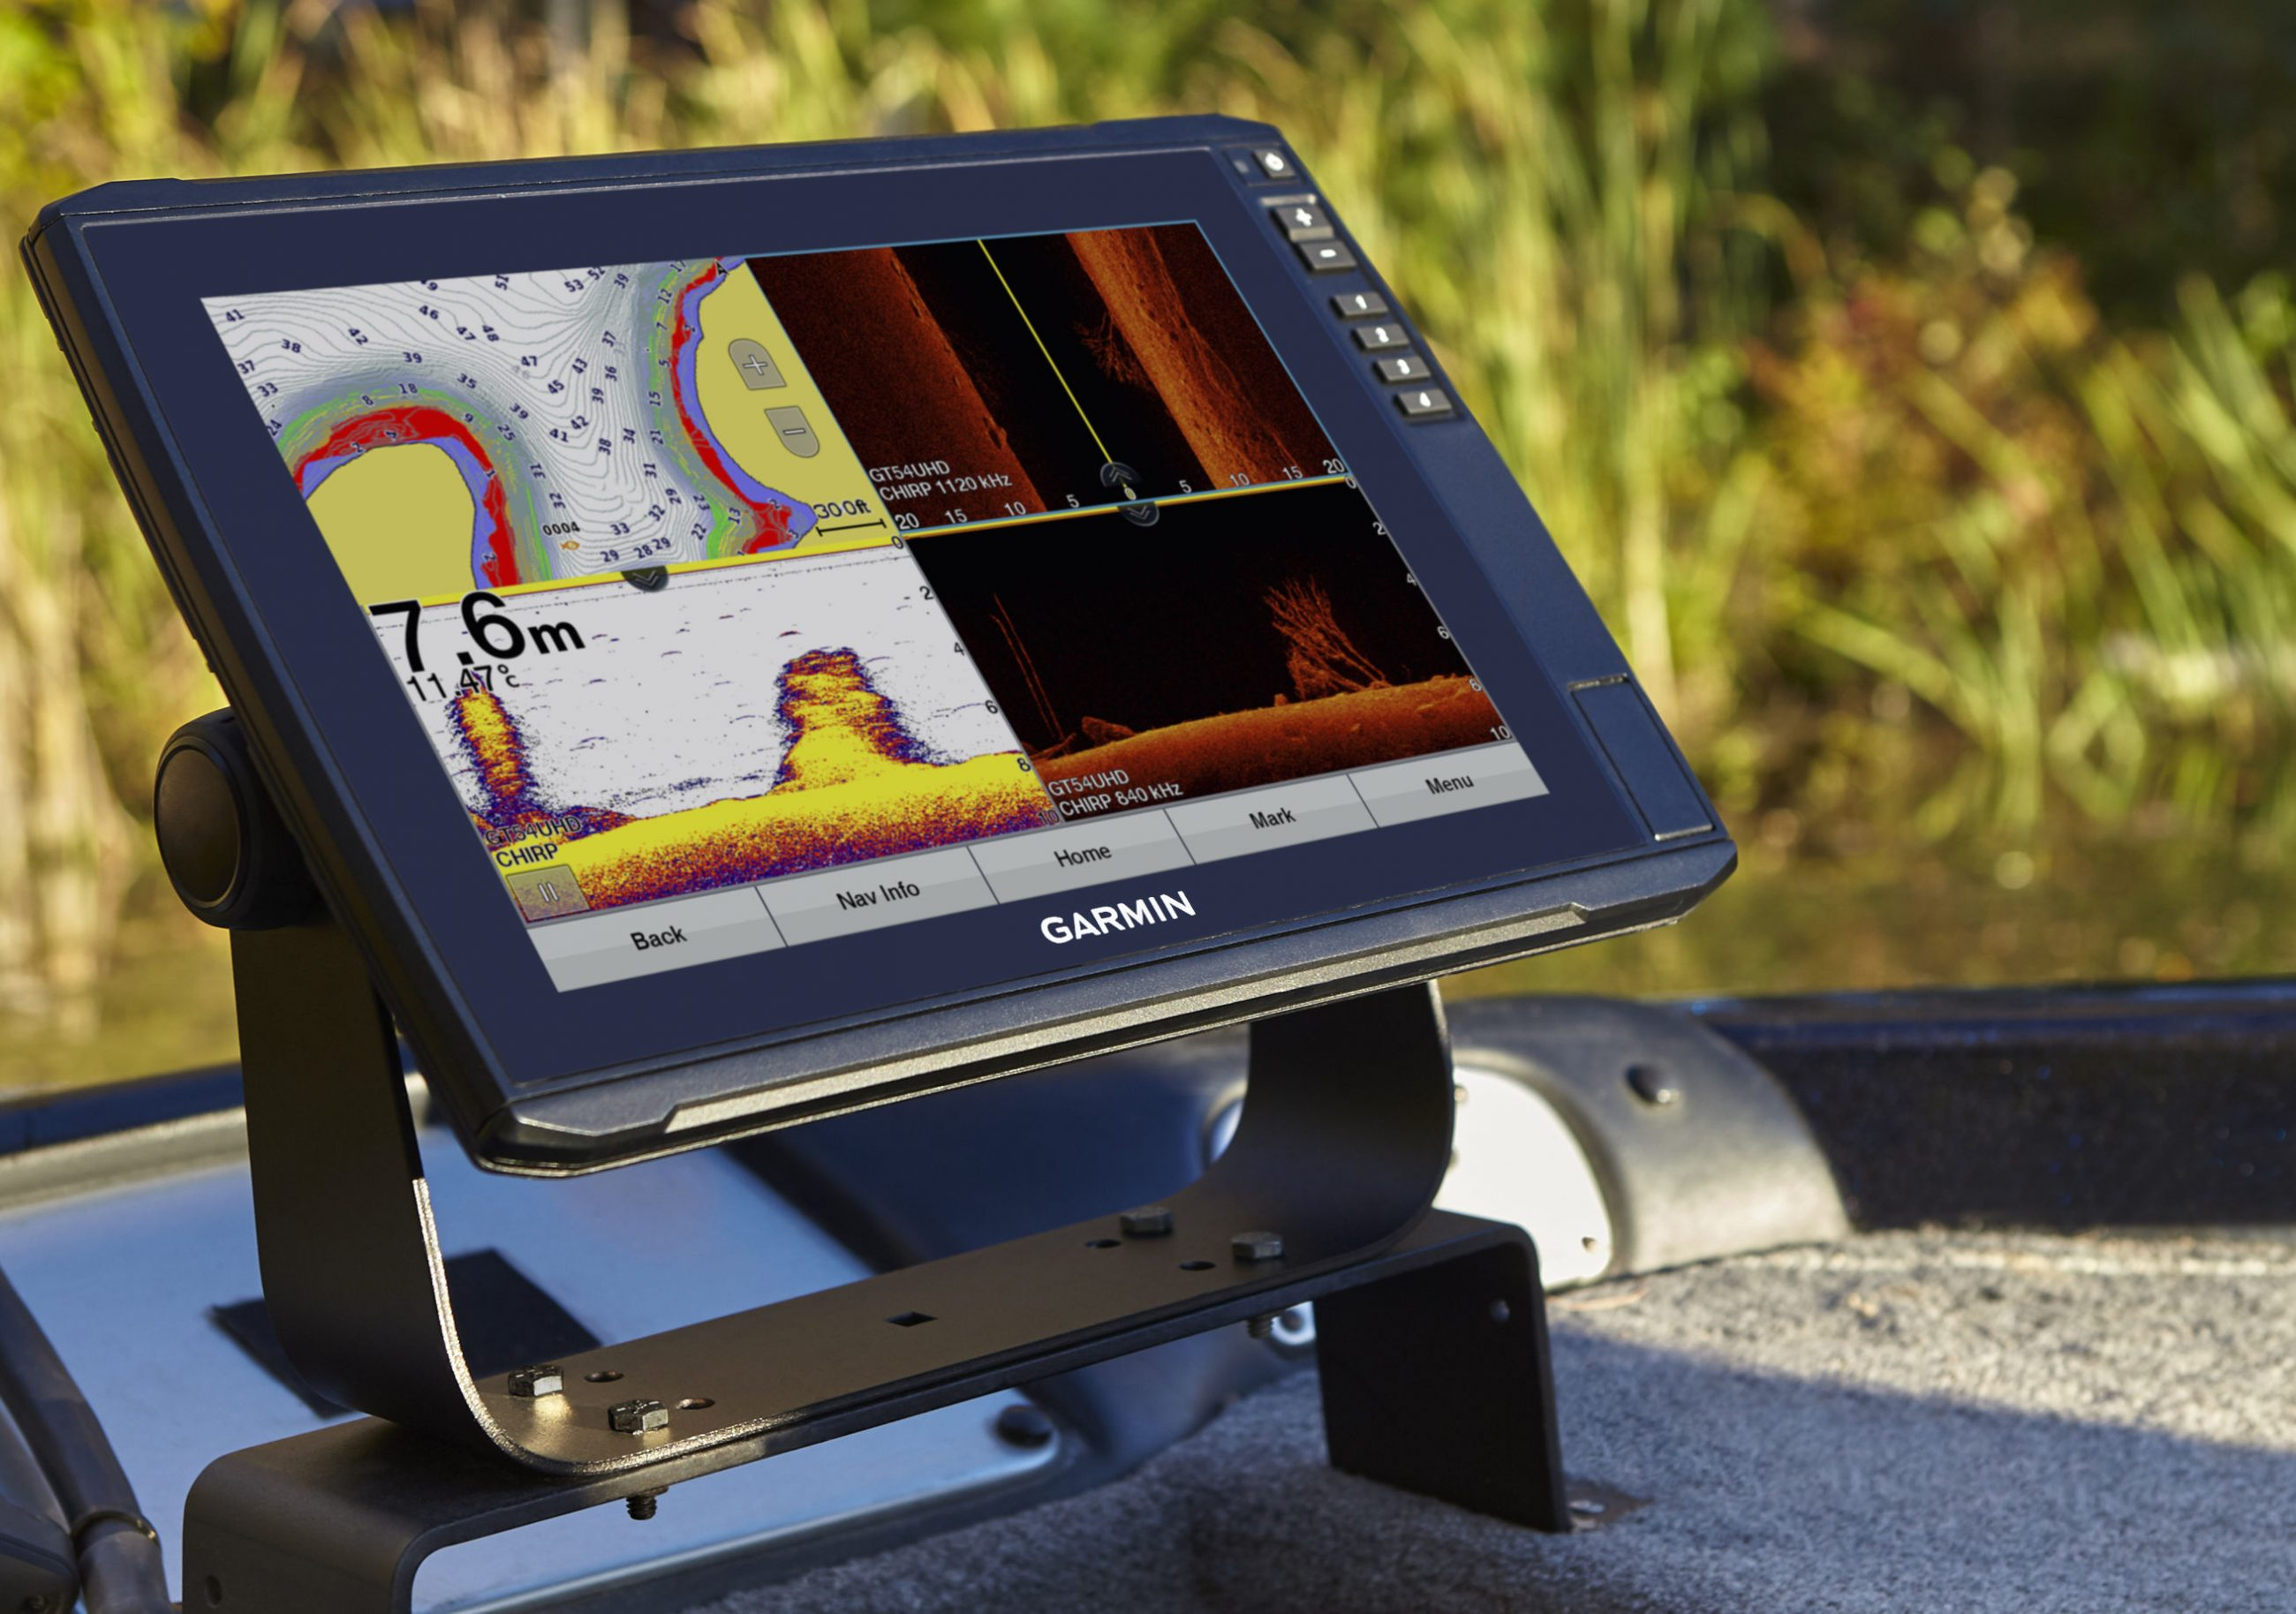 Garmin introduces the ECHOMAP Ultra series with larger